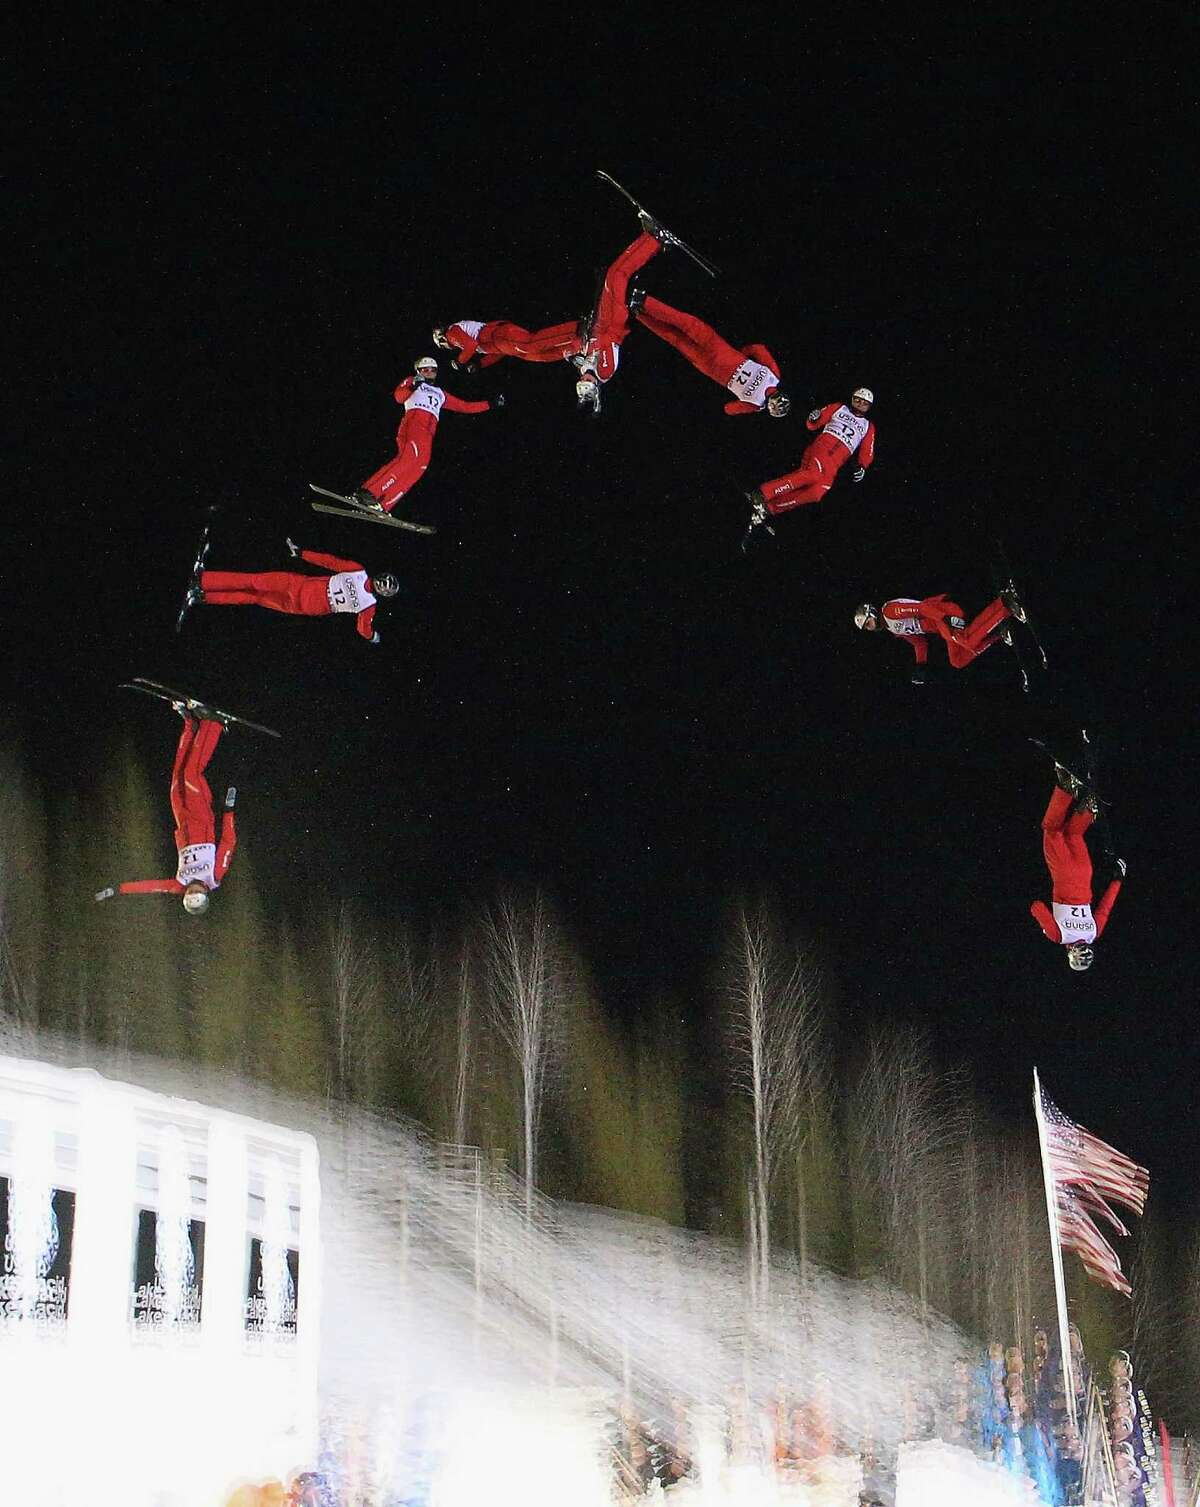 LAKE PLACID, NY - JANUARY 19: (EDITORS NOTE: Multiple exposures were combined in camera to produce this image.) Thomas Lambert #12 of Switzerland jumps in the qualification round of the USANA Freestyle World Cup aerial competition at the Lake Placid Olympic Jumping Complex on January 19, 2013 in Lake Placid, New York.